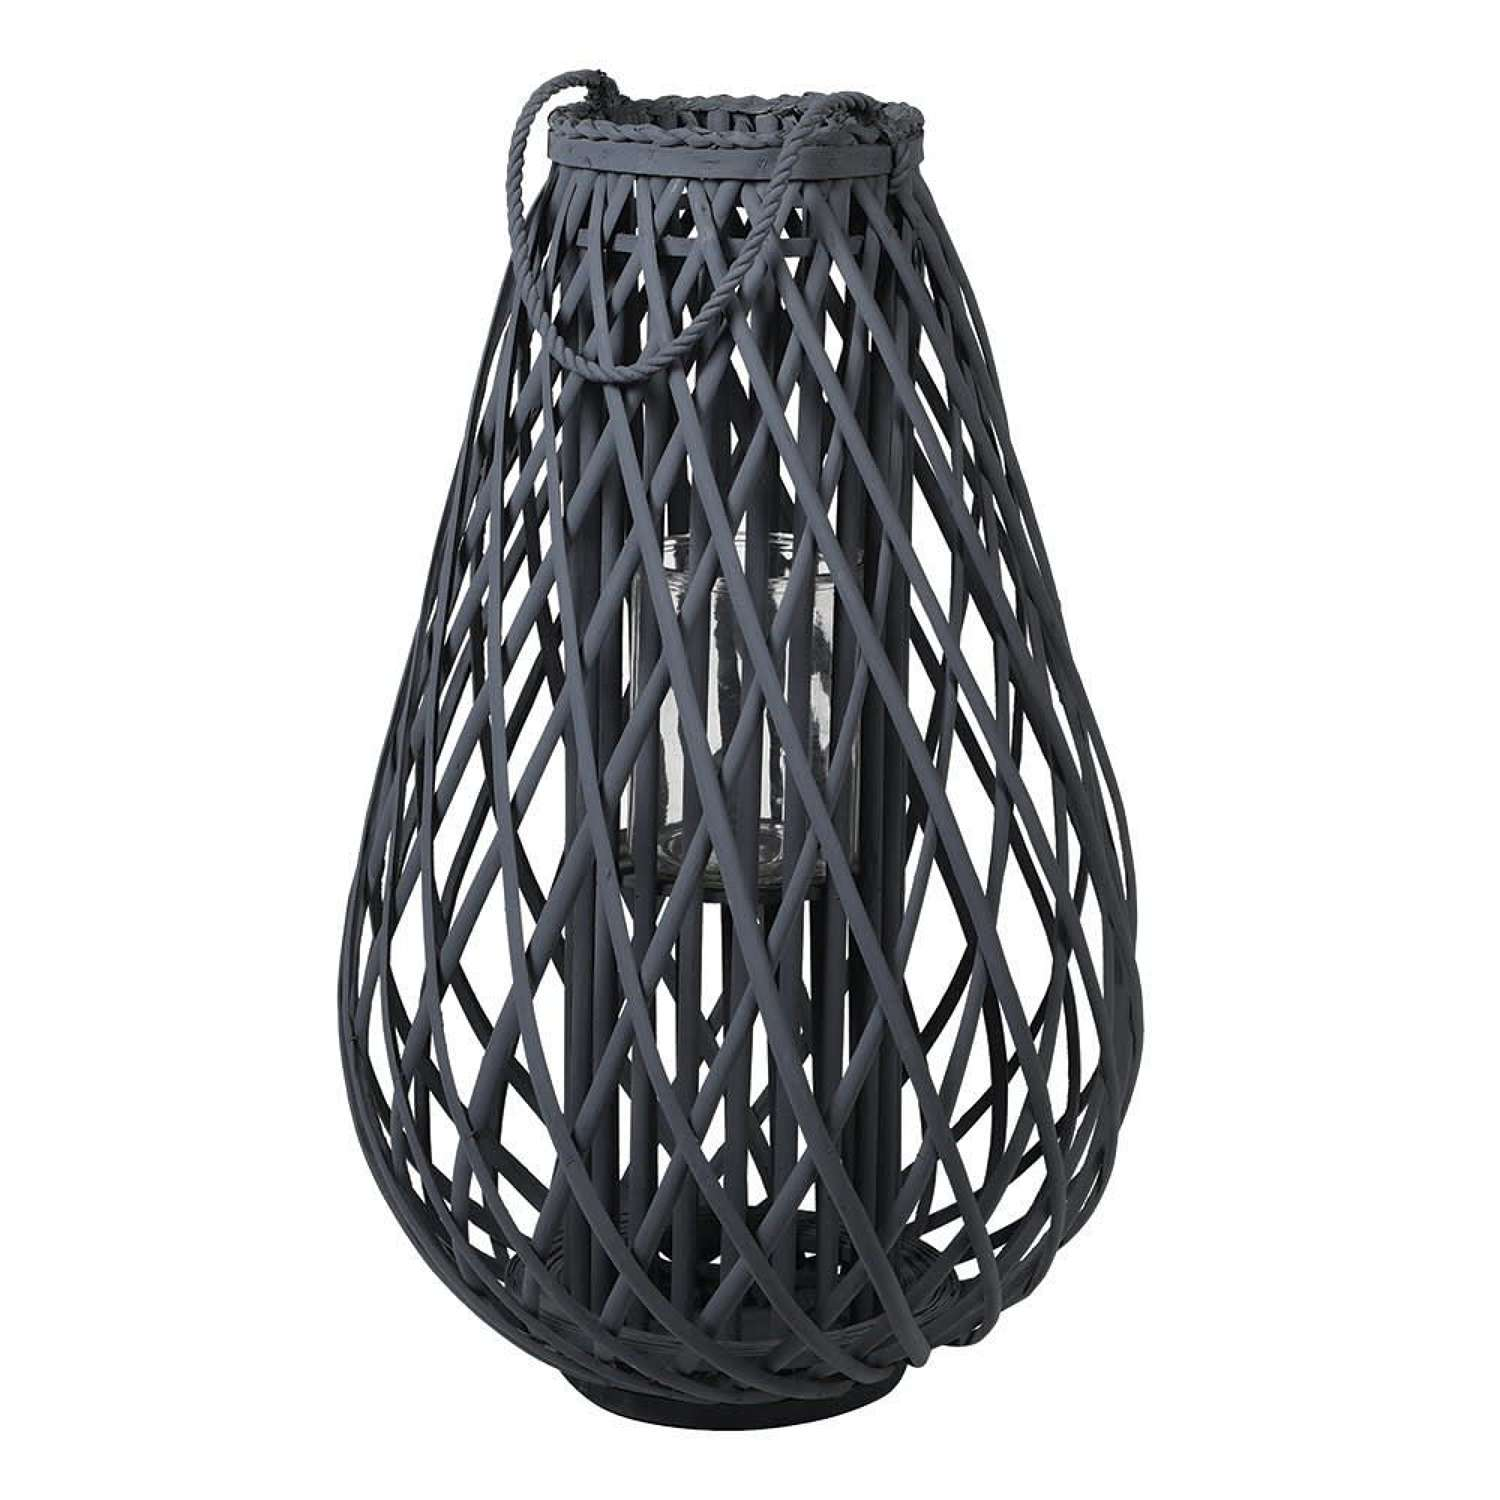 Large dark grey willow lantern